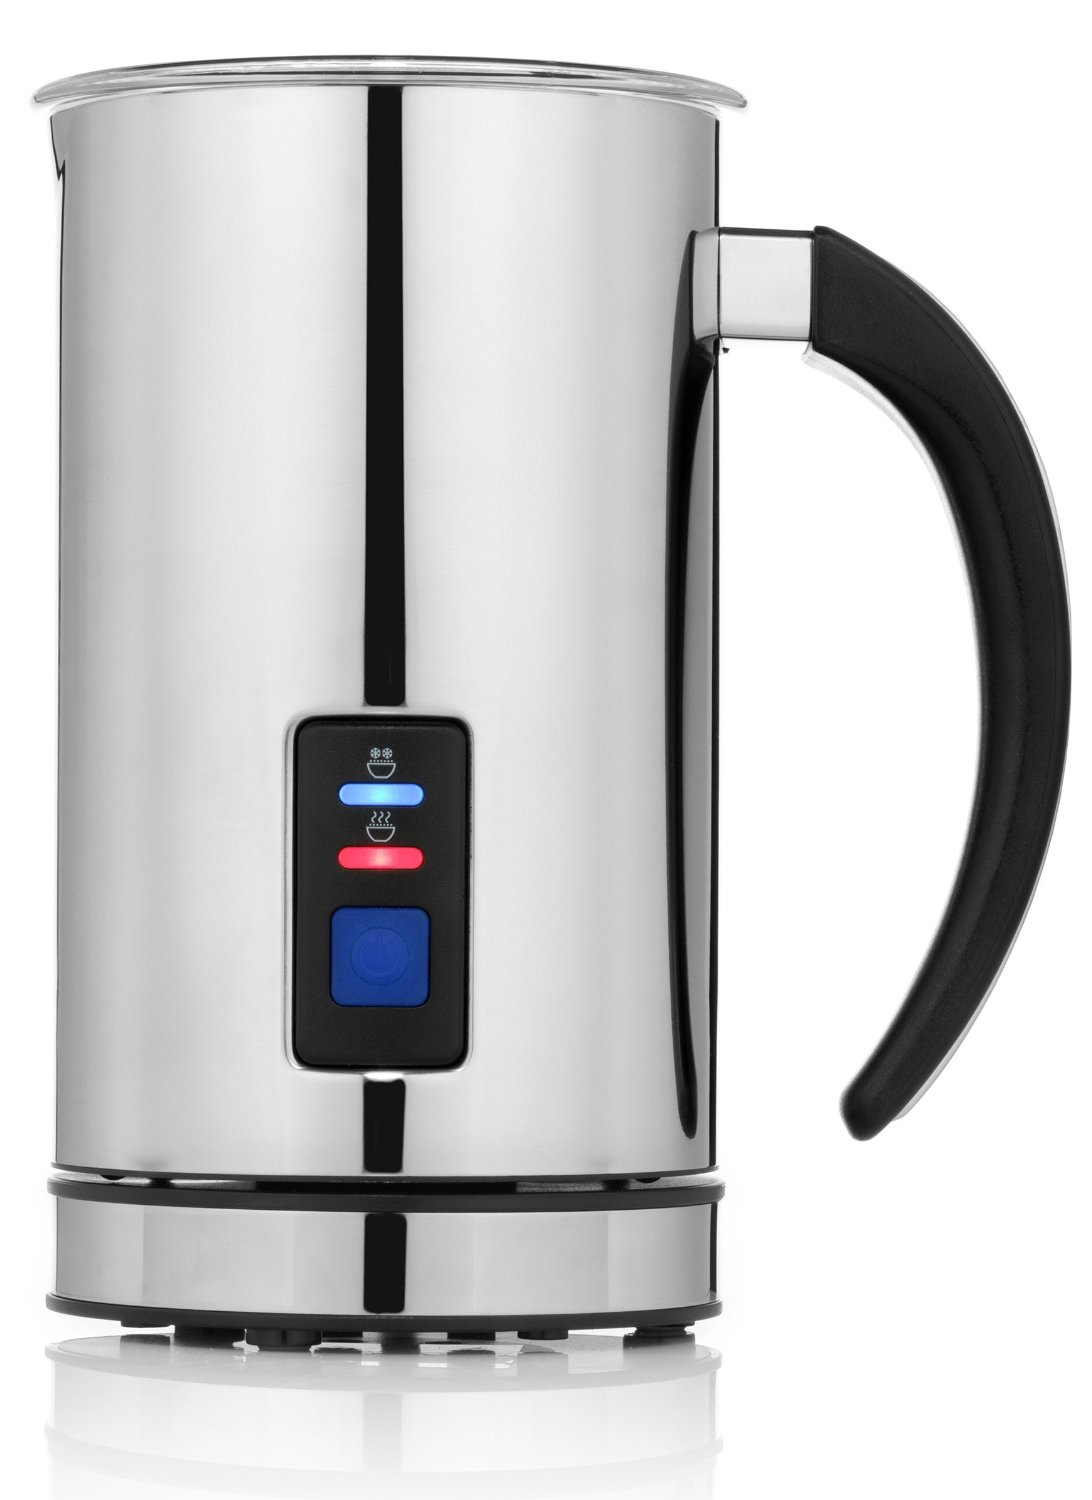 $39.99 Chefs Star Premier Automatic Milk Frother, Heater and Cappuccino Maker